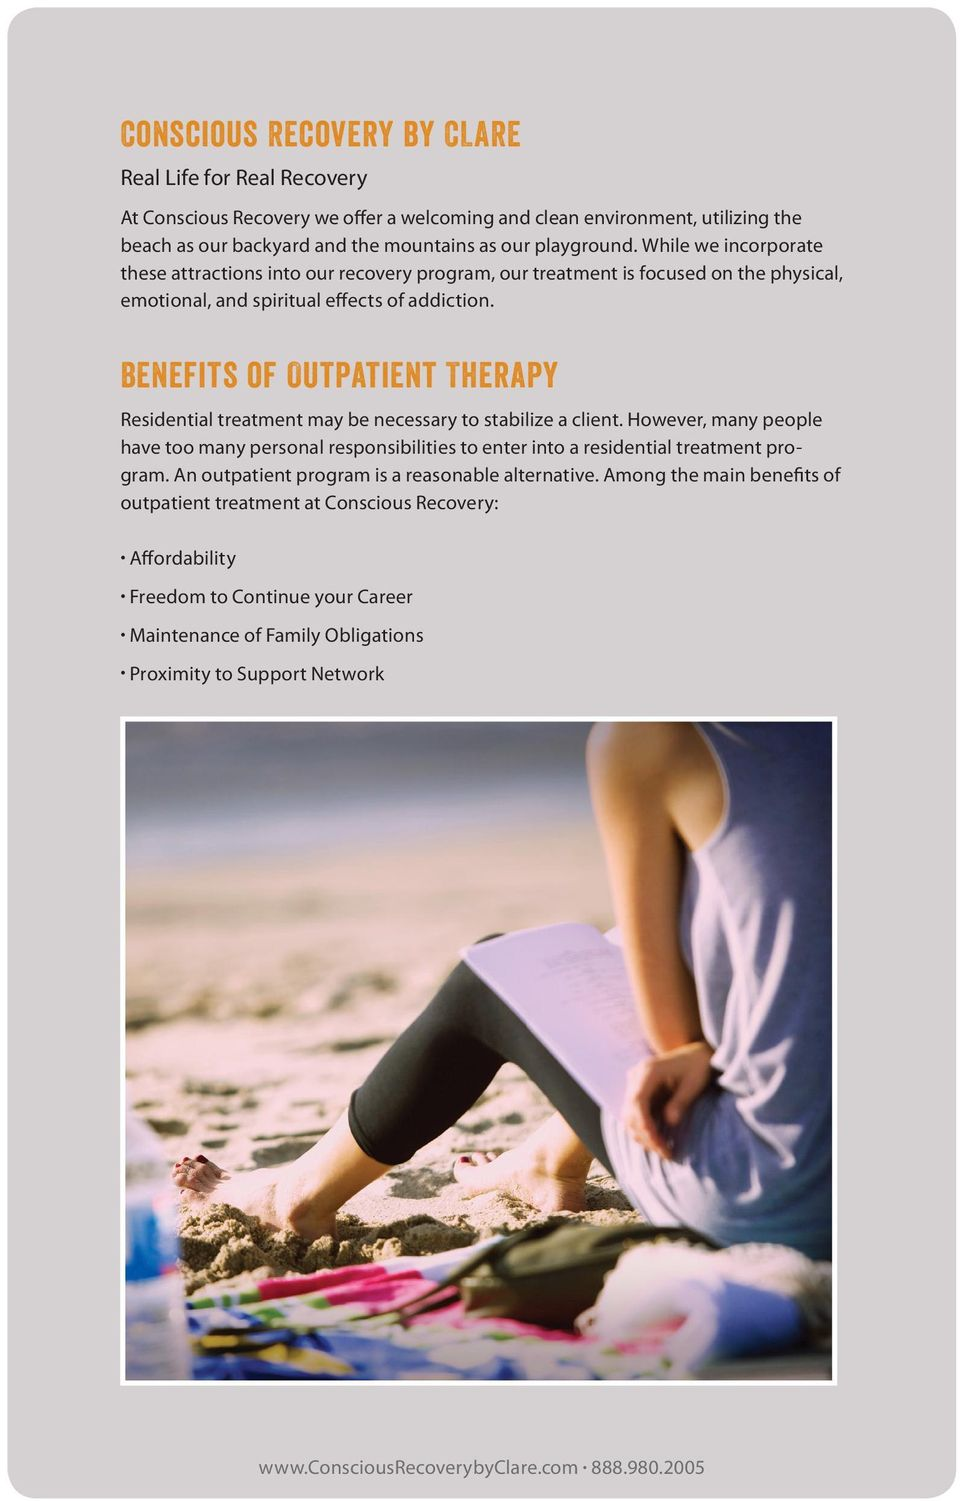 Benefits of Outpatient Therapy Residential treatment may be necessary to stabilize a client.